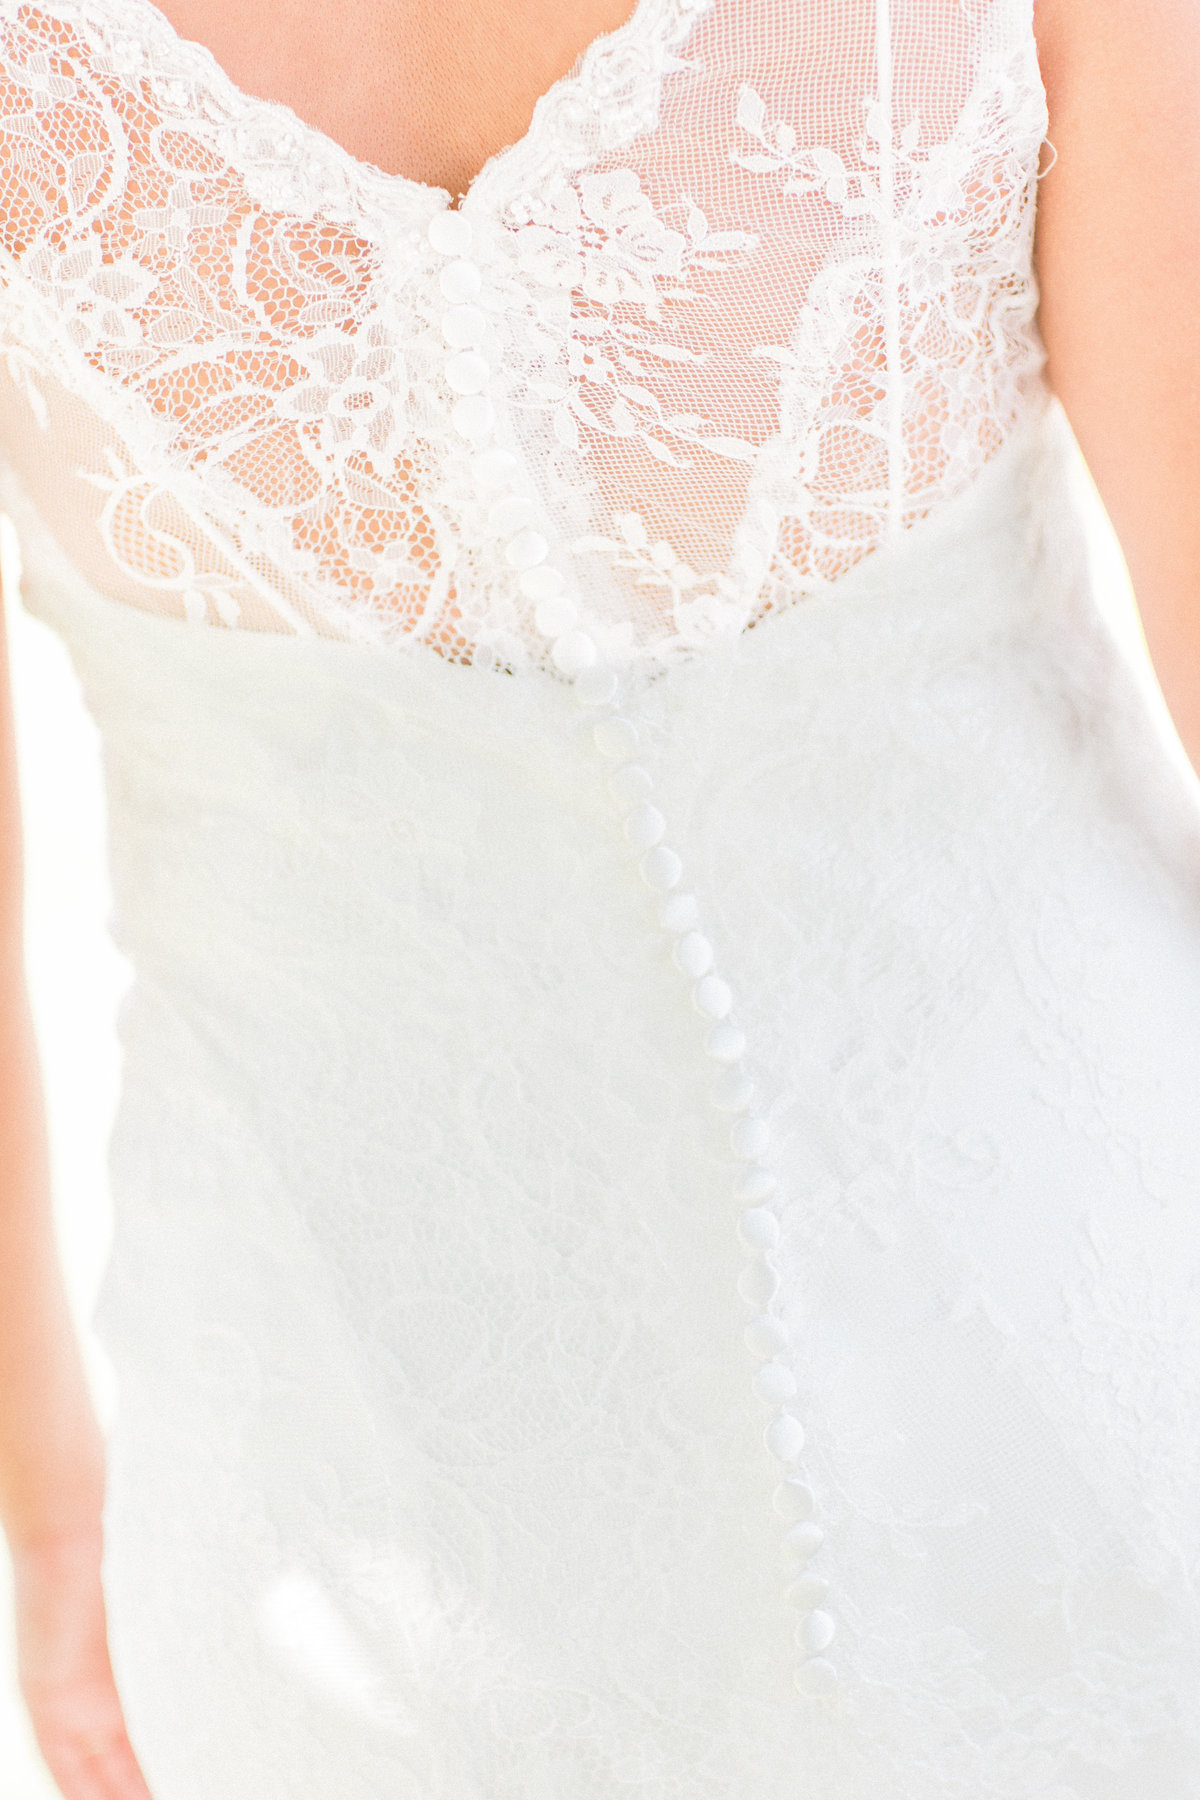 Vintage Lace Weddding Dress Detail